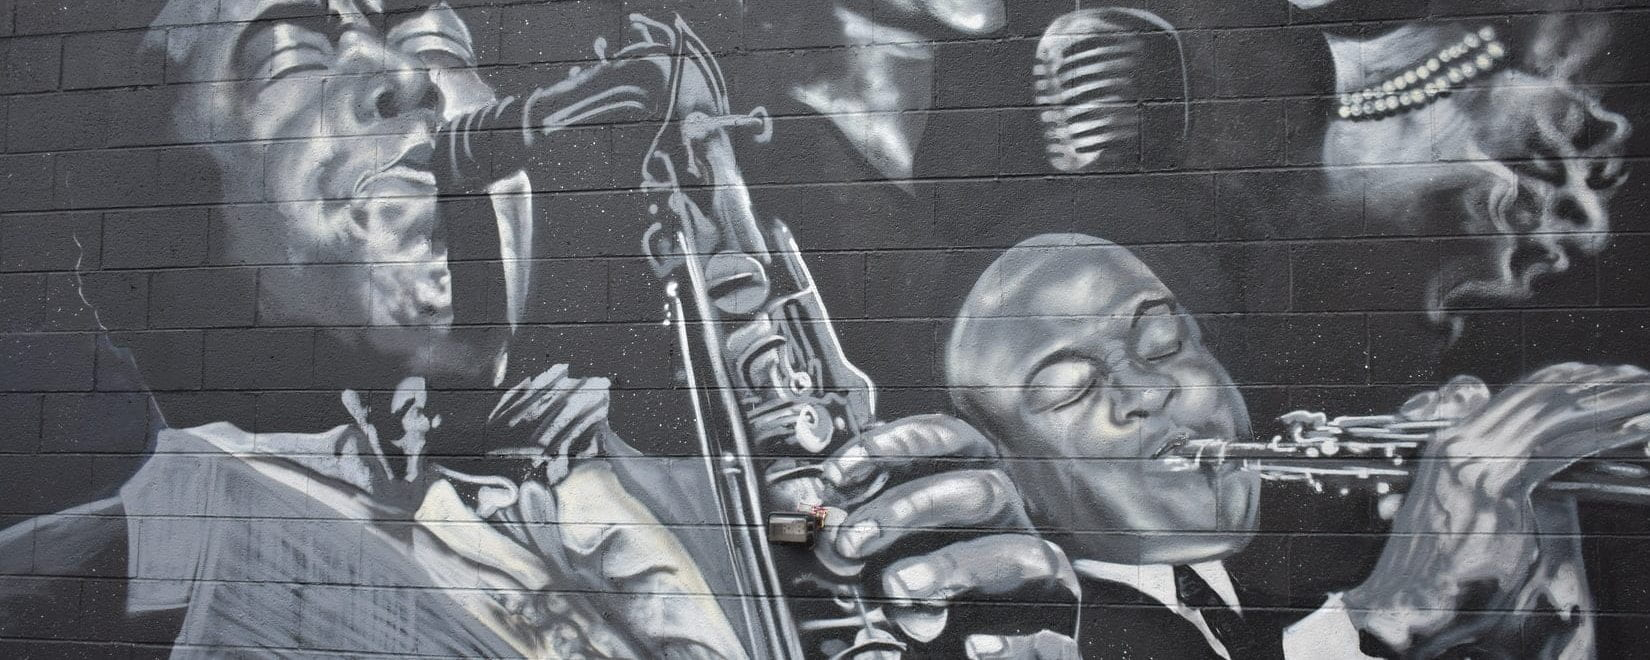 Black and white drawing on a wall of black musicians